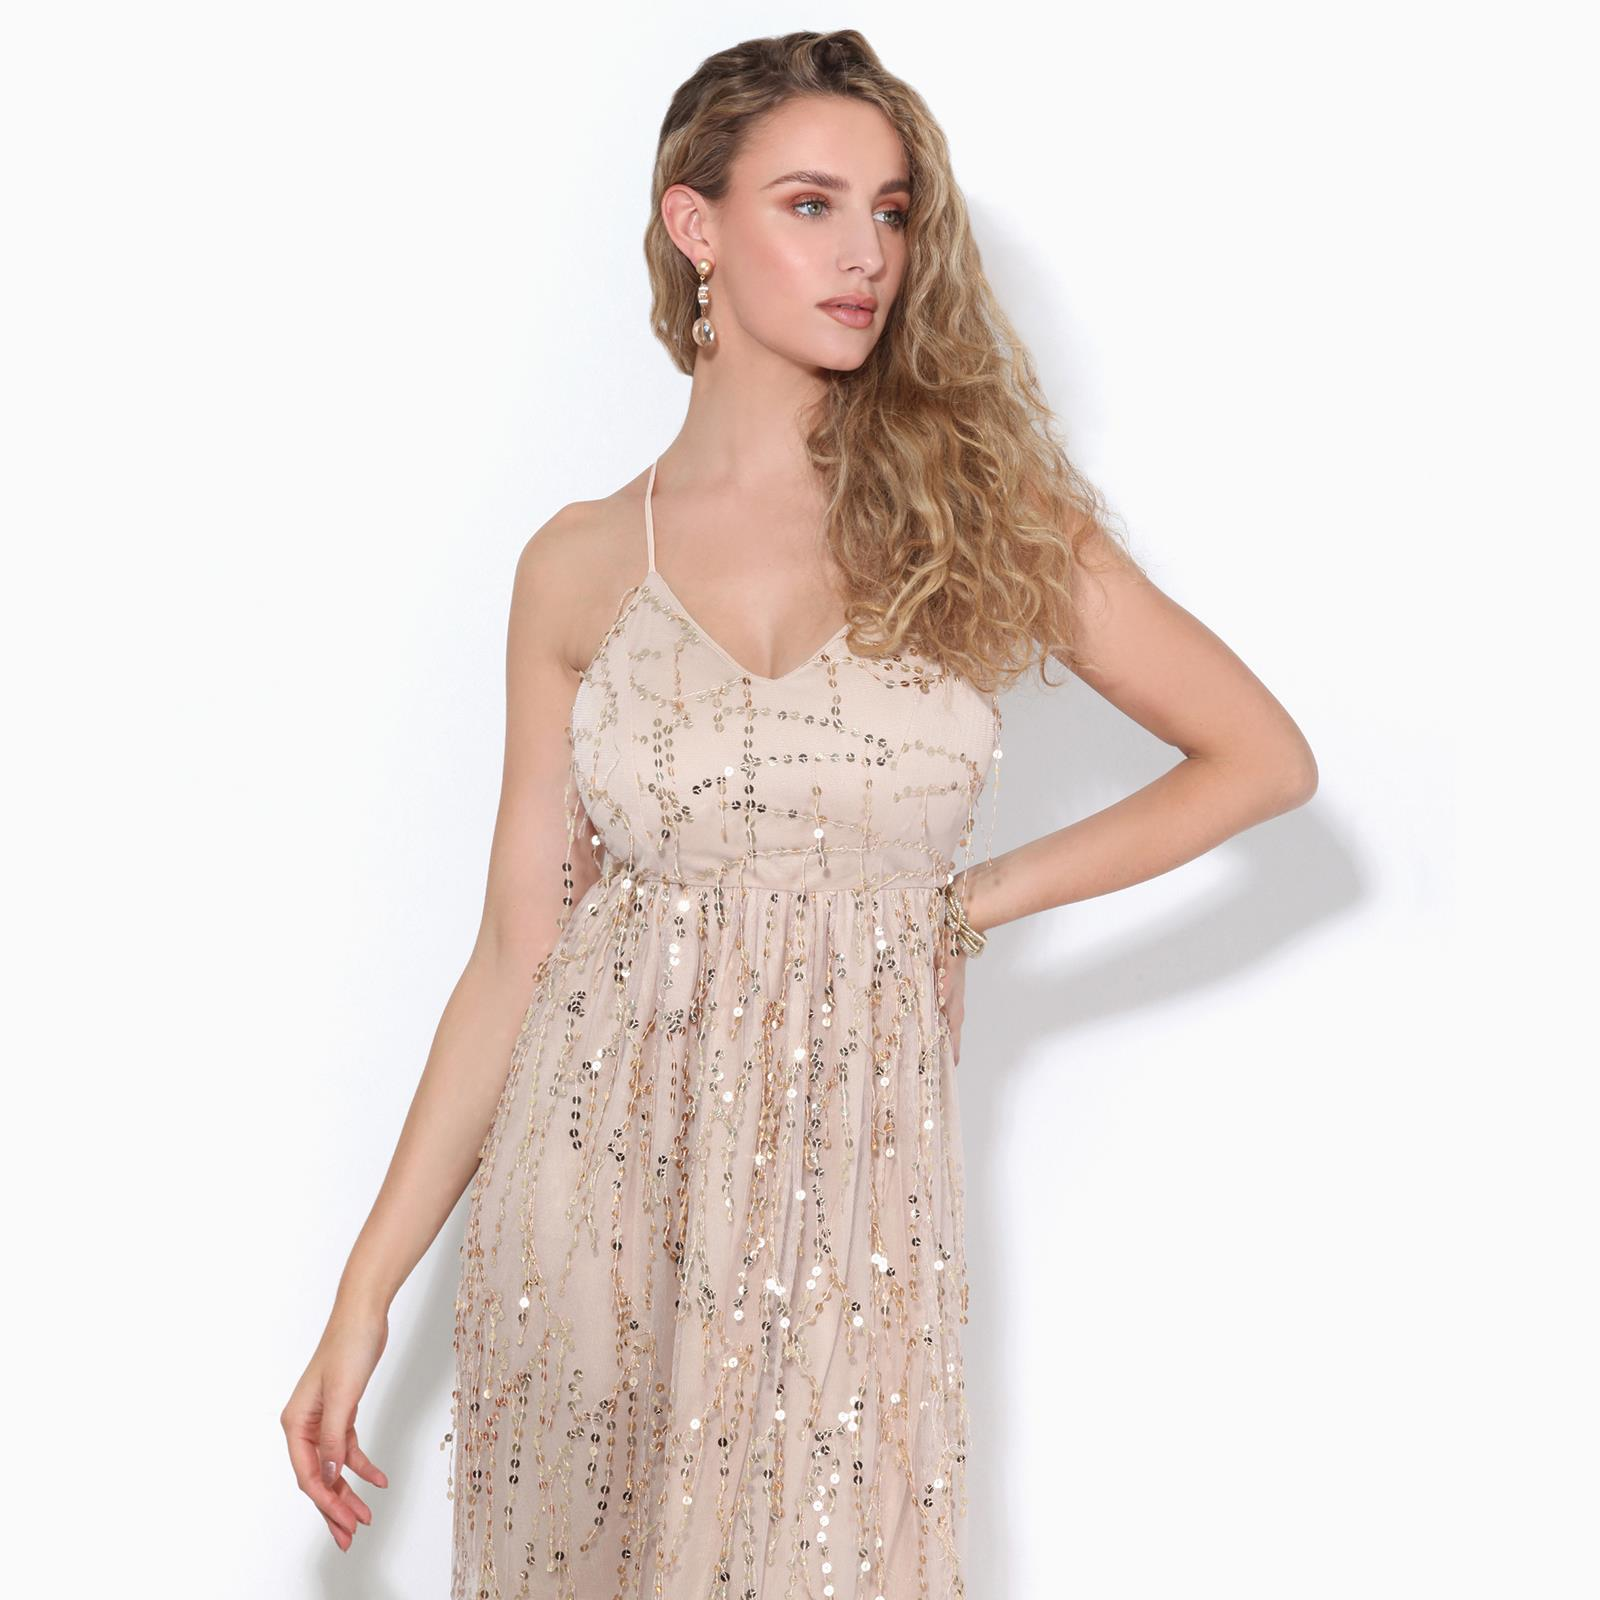 Womens-Ladies-Sequin-Dress-Midi-Party-Mesh-Fringe-Strappy-Evening-Backless thumbnail 3